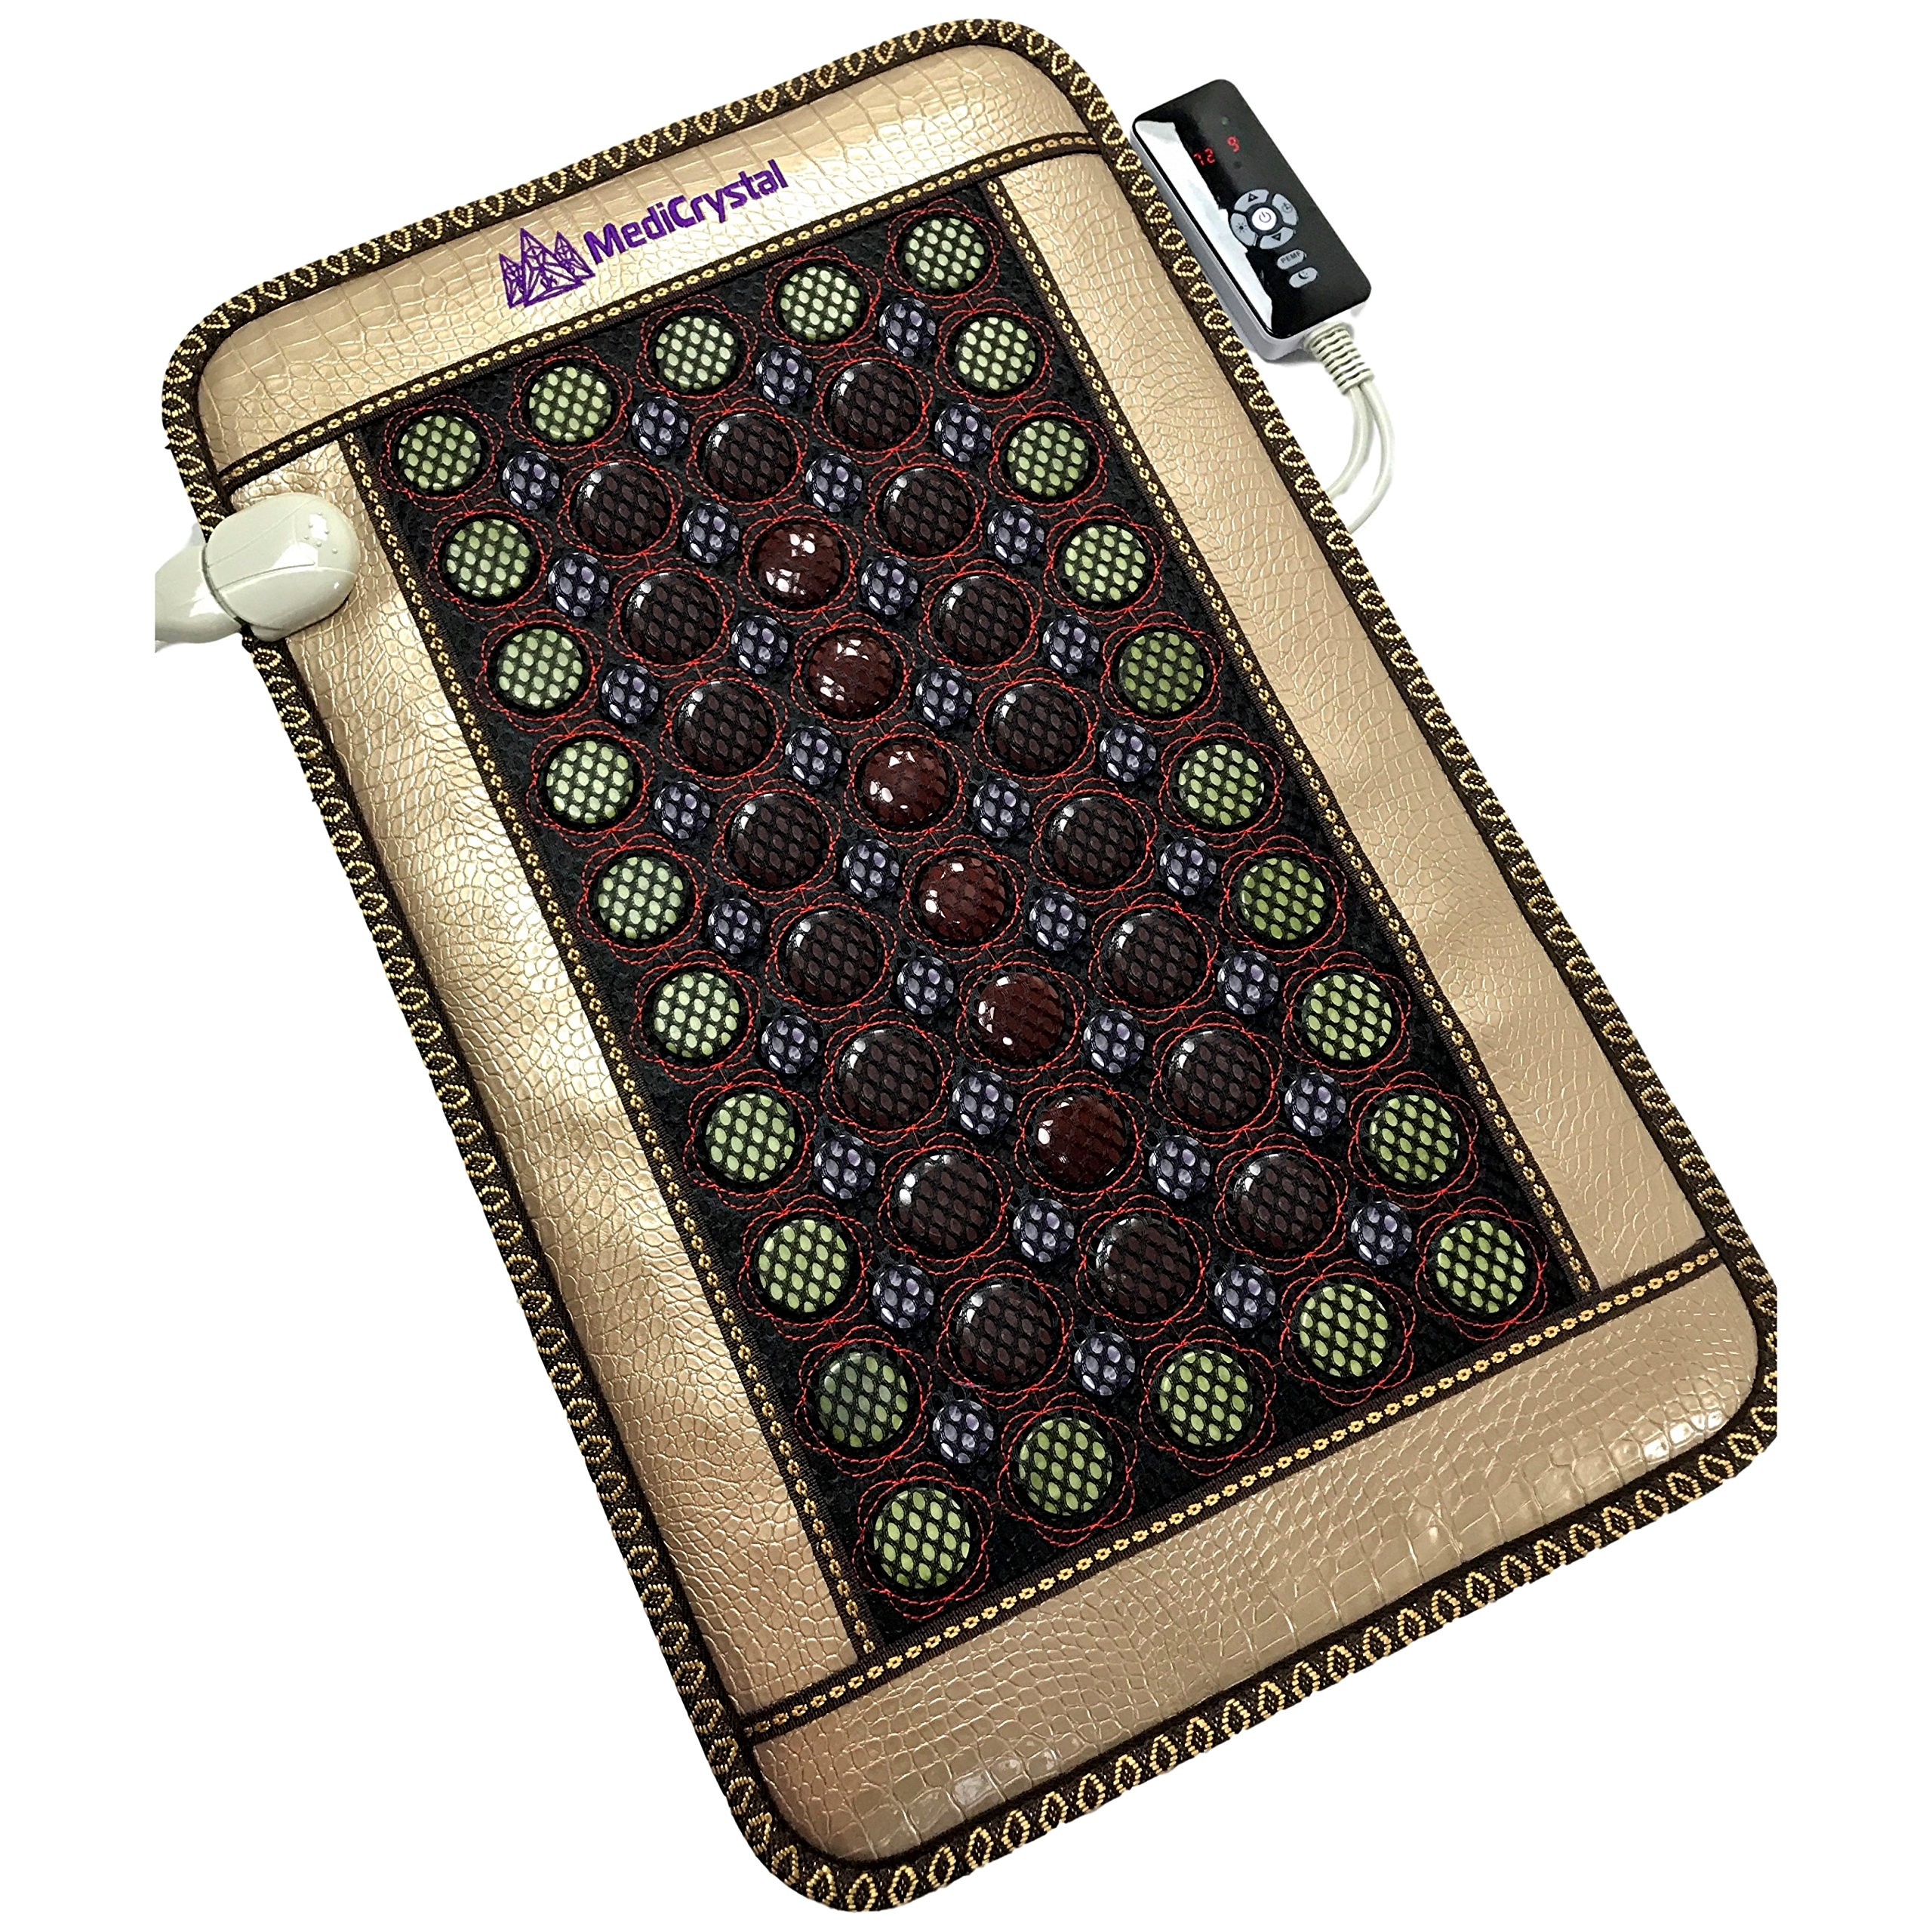 4 Gems FIR Bio Magnetic Mat - Natural Hot Stones - Amethyst Jade Tourmaline Agate - - Far InfraRed Heating Pad - 10Hz PEMF - Negative Ion - FDA Registered Manufacturer (Mini 32''L x 20''W) by MediCrystal (Image #10)